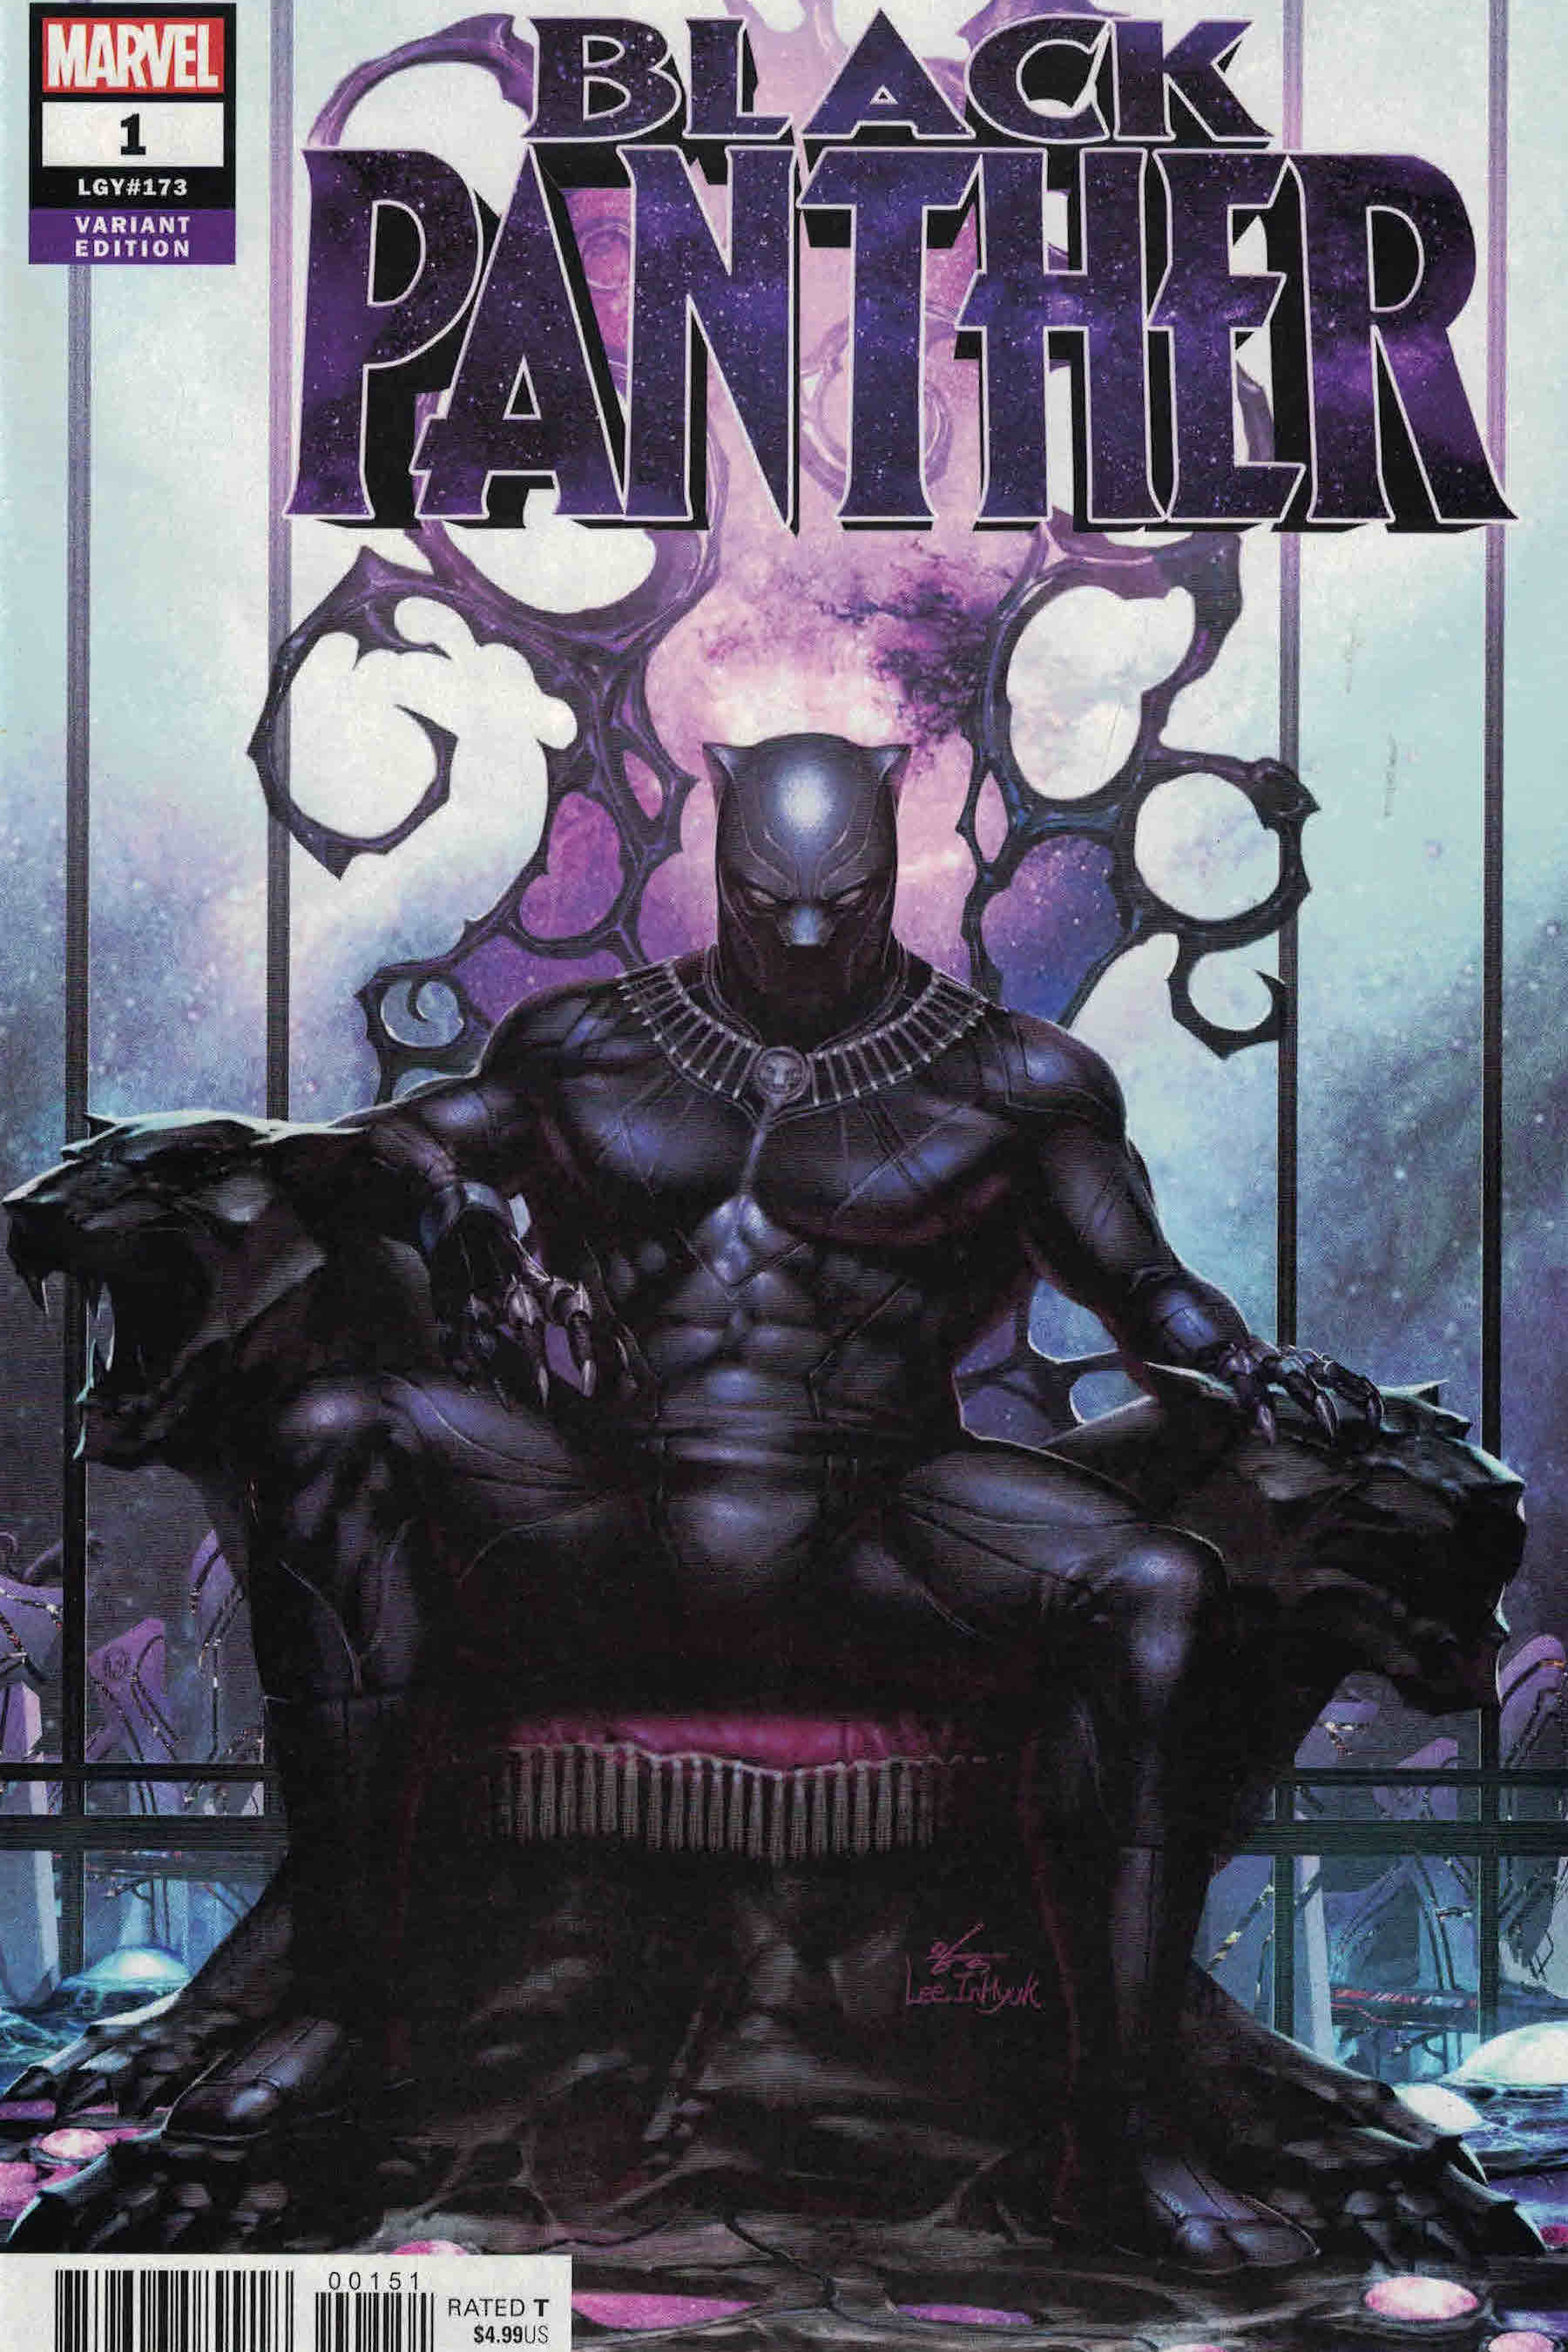 Kwity Paye by Sean Chen and Lee Duhig, after BLACK PANTHER #1 by InHyuk Lee